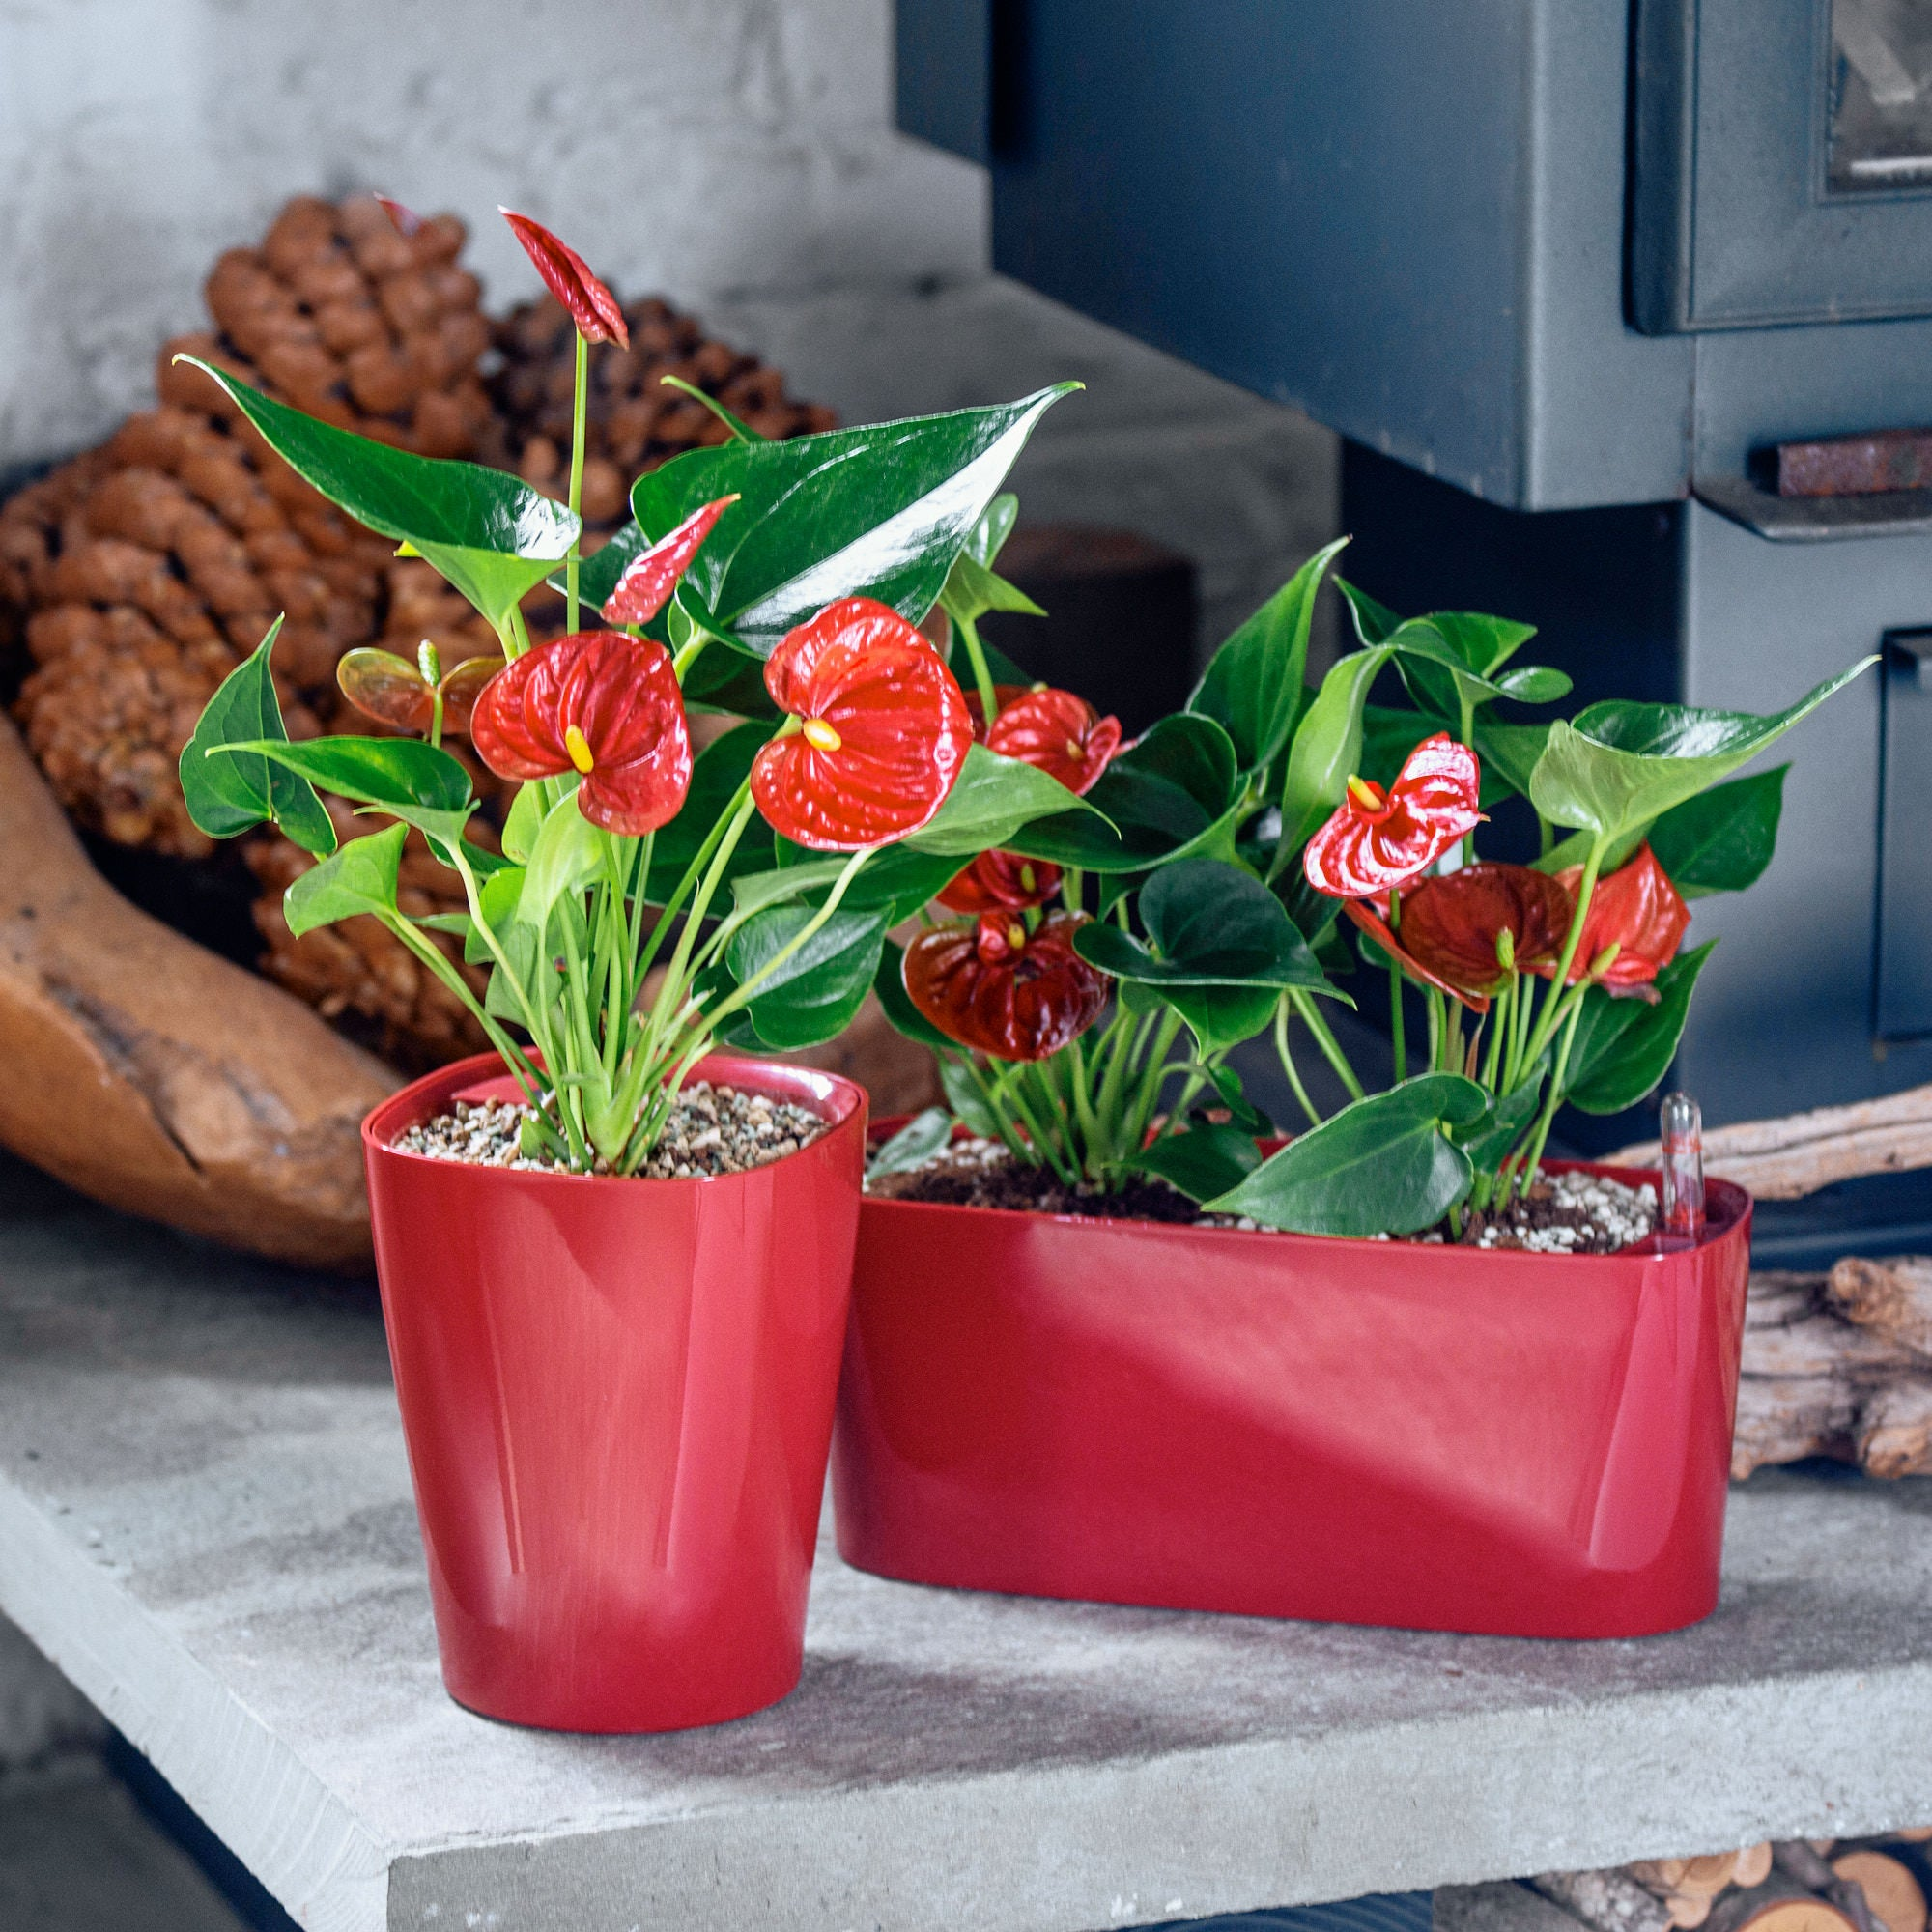 Anthurium plants potted in Lechuza self-watering red planters - My City Plants